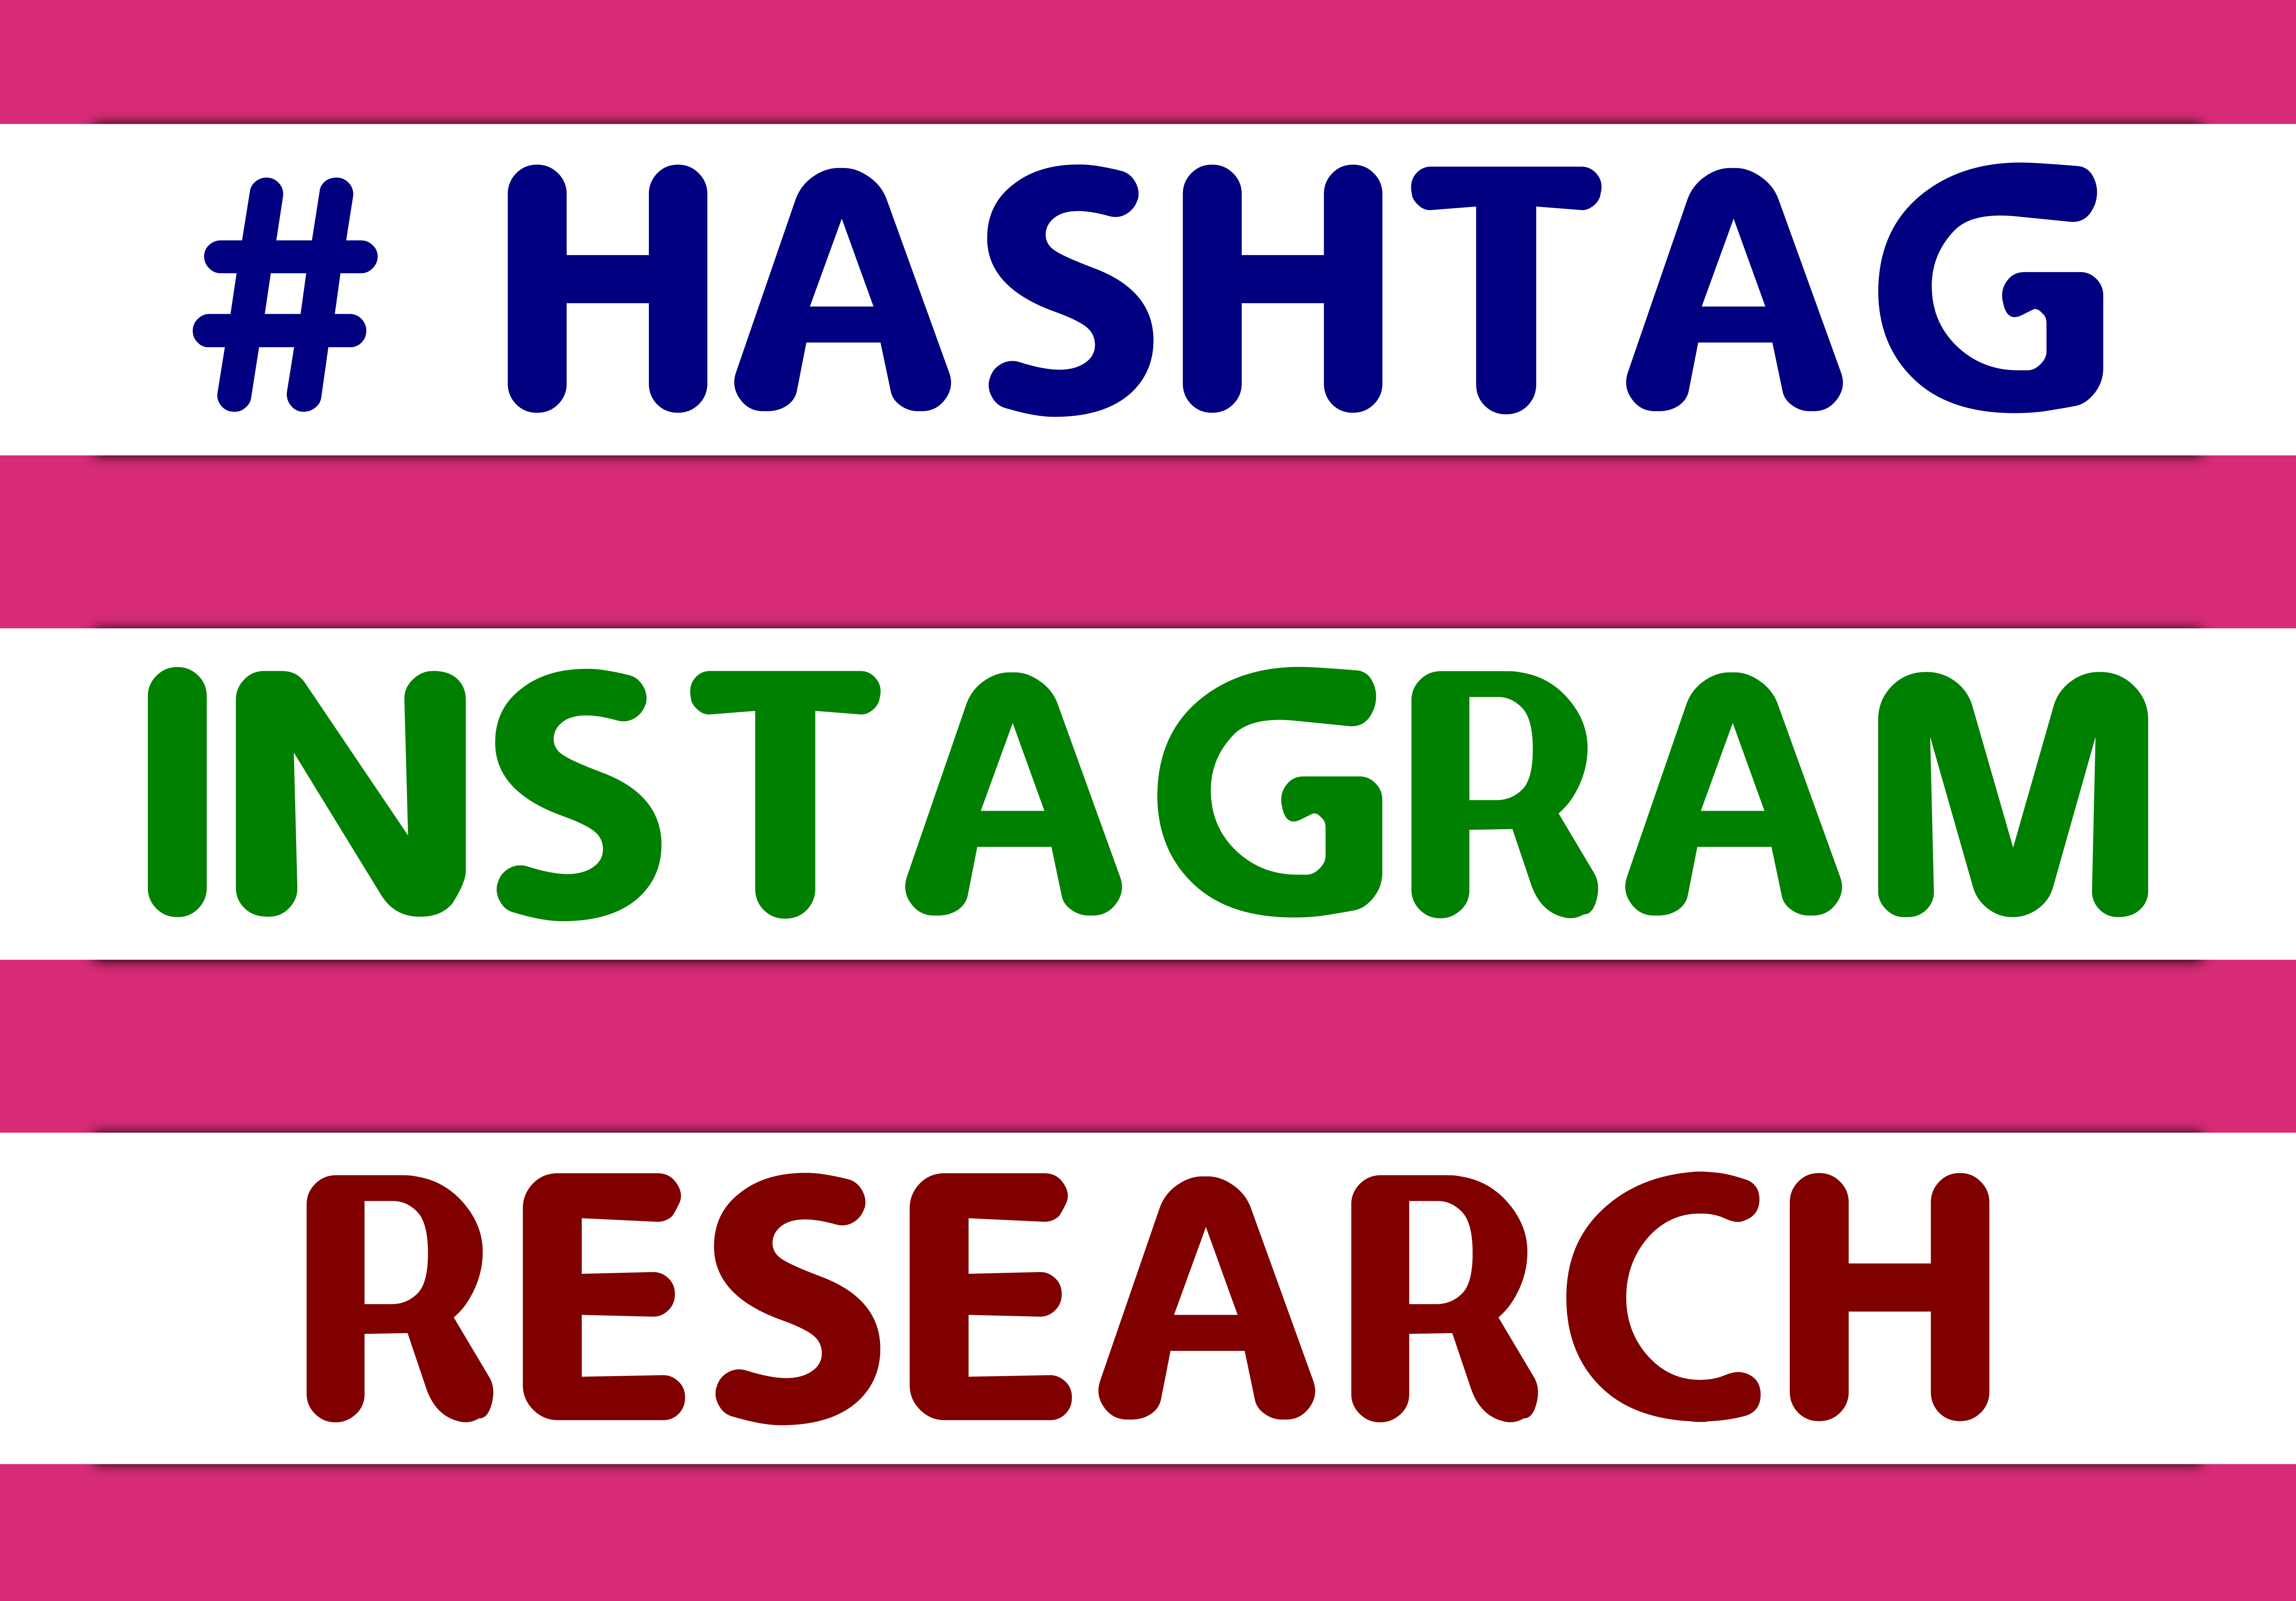 Keyword research 30 hashtags to grow your Instagram